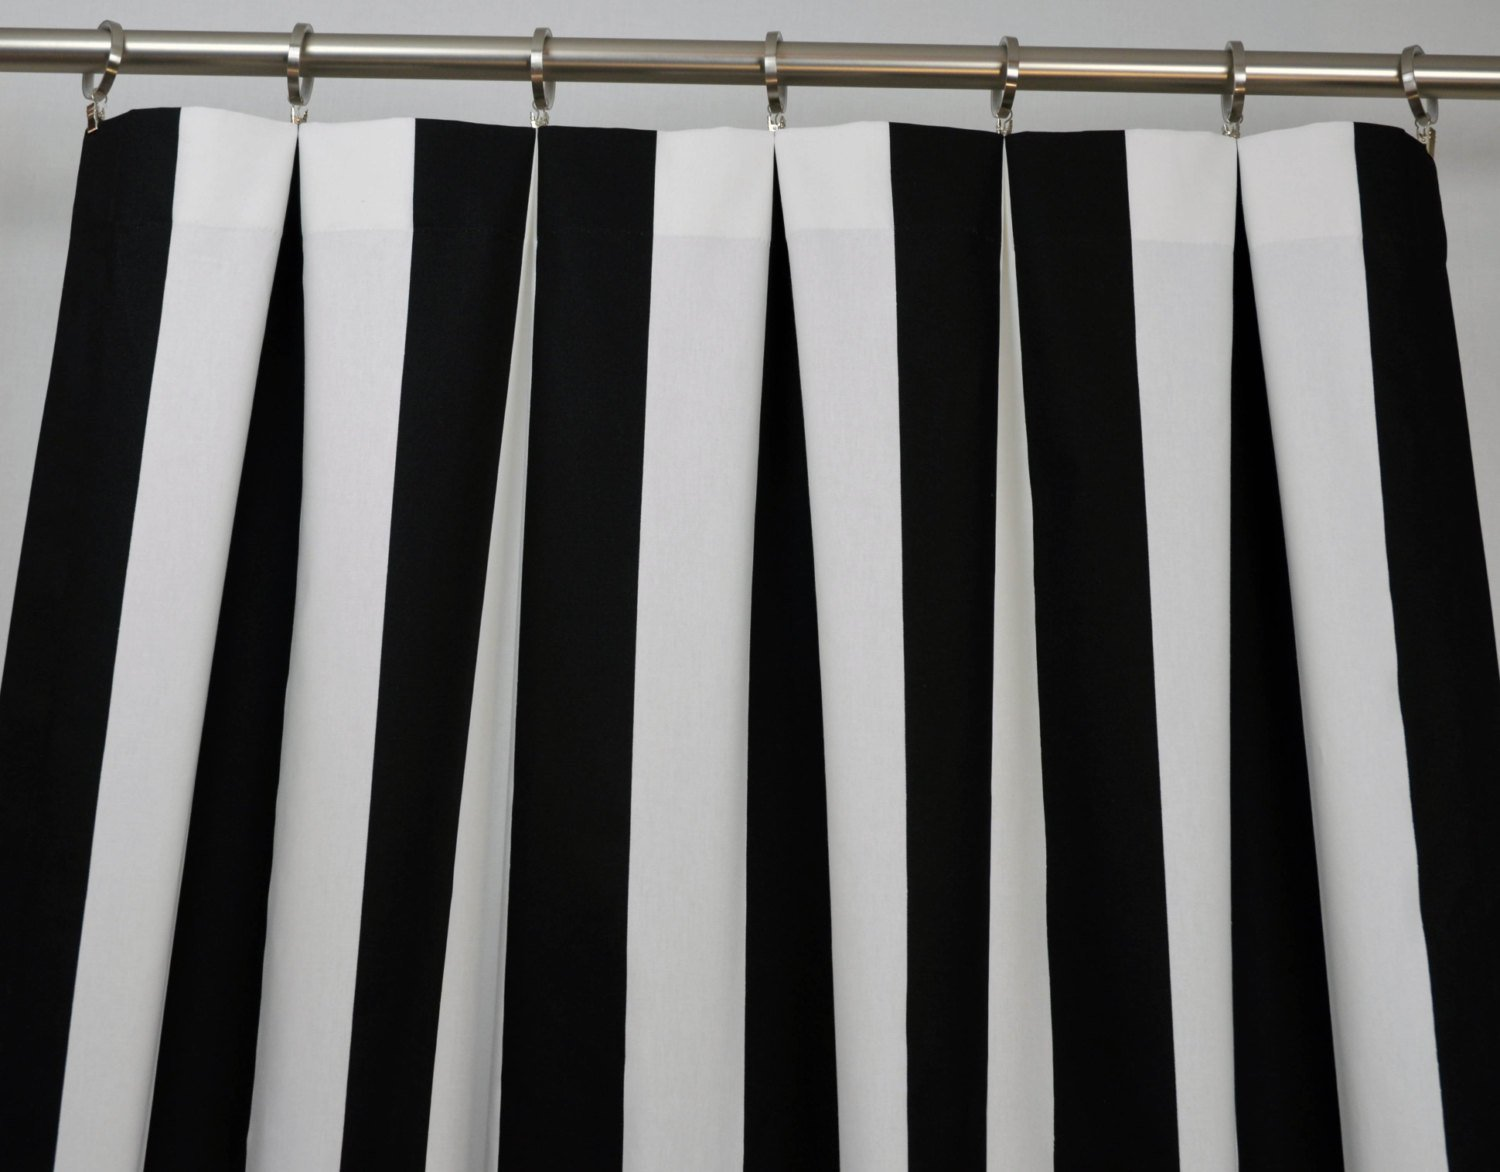 amazoncom black and white vertical stripe drape one rod pocket curtain panel 120 inches long x 50 inches wide home kitchen